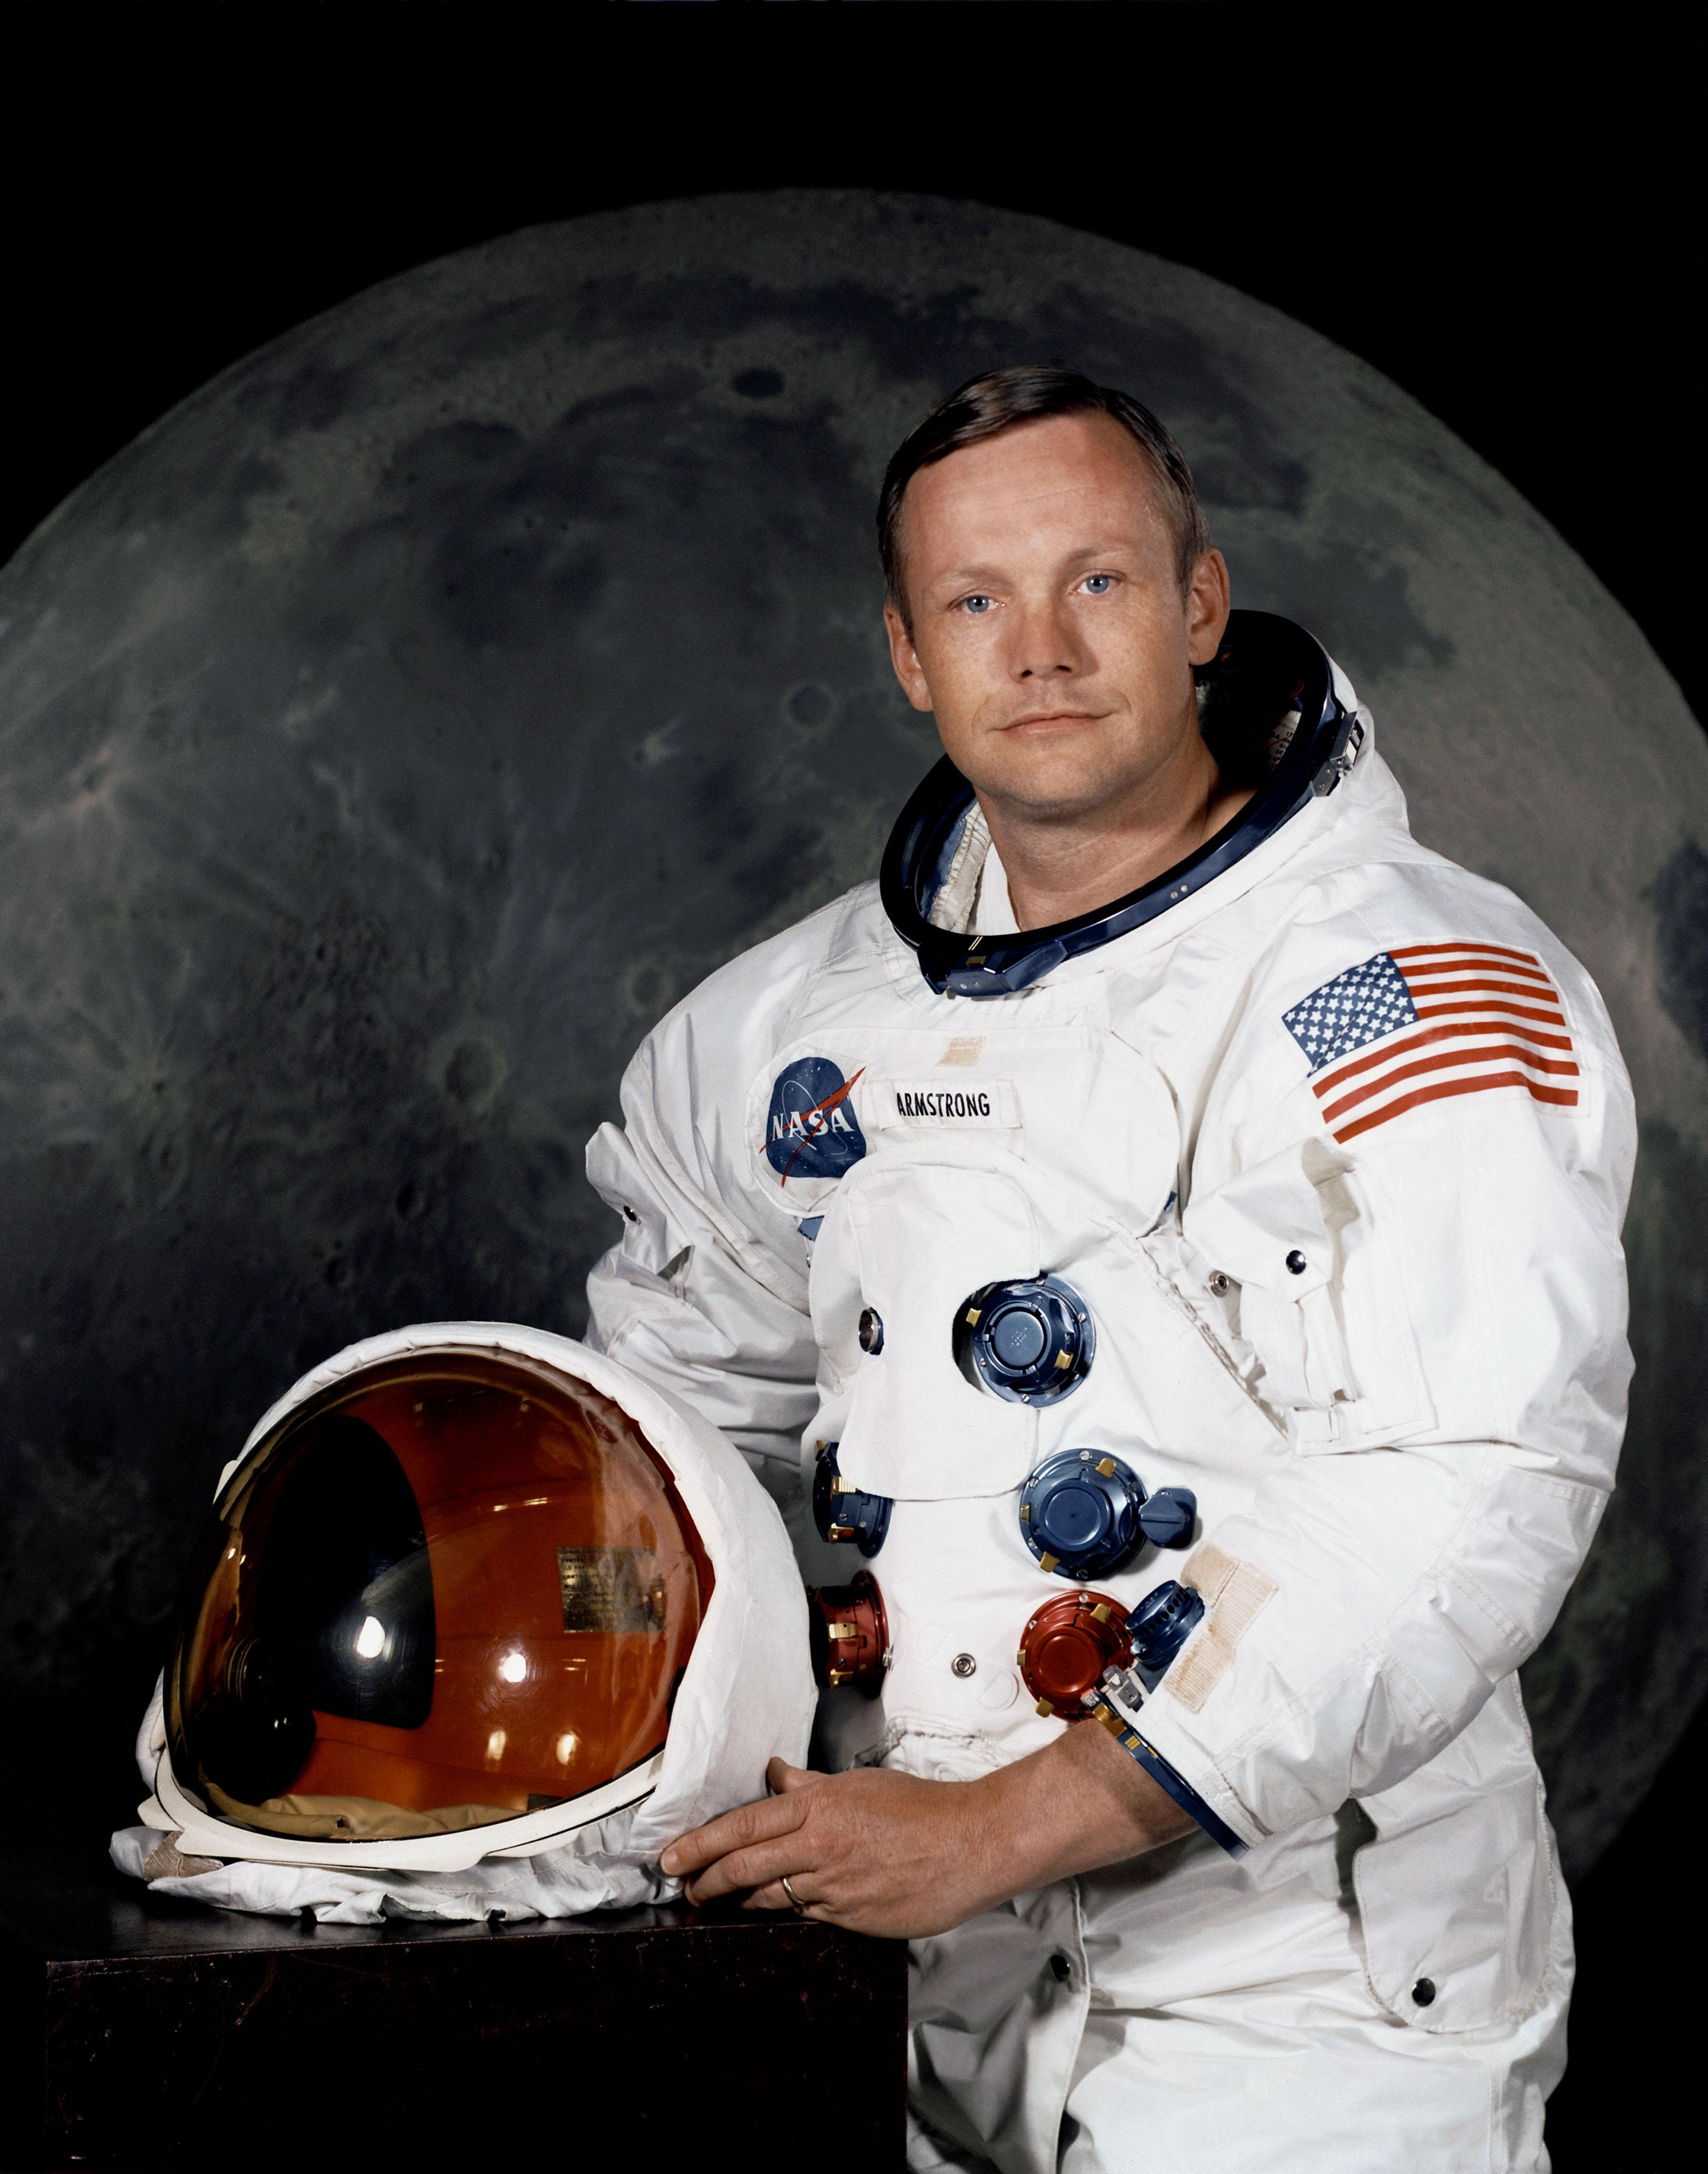 Neil Armstrong in astronaut suit.